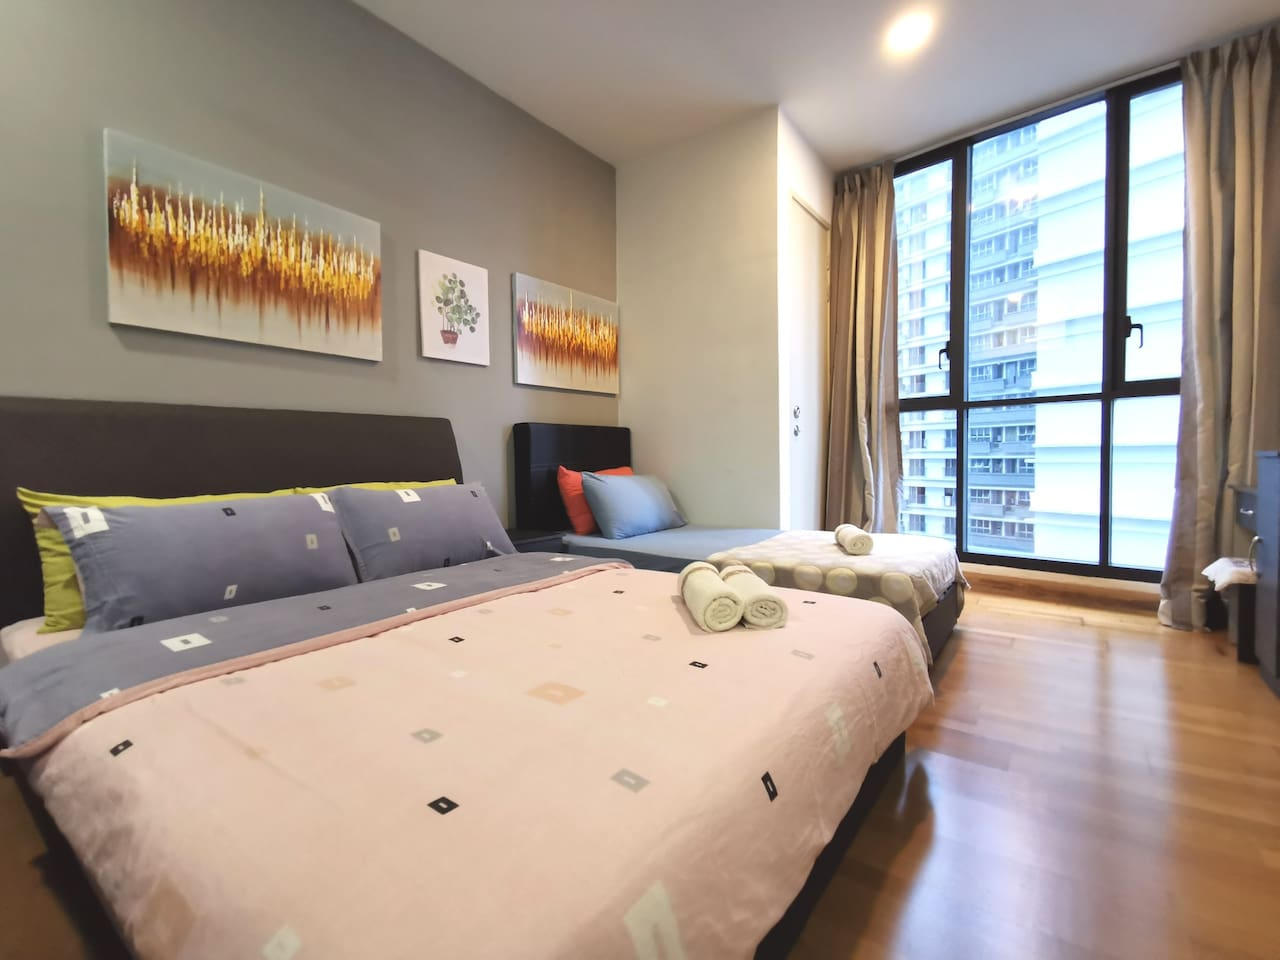 Master bedroom with 1 queen bed & 1 single bed (for 3 persons) Equipped with 1 wardrobe and dressing table (with mirror) 主卧室,1个双人床及1个单人床,有衣柜,梳妆台带镜及凳子